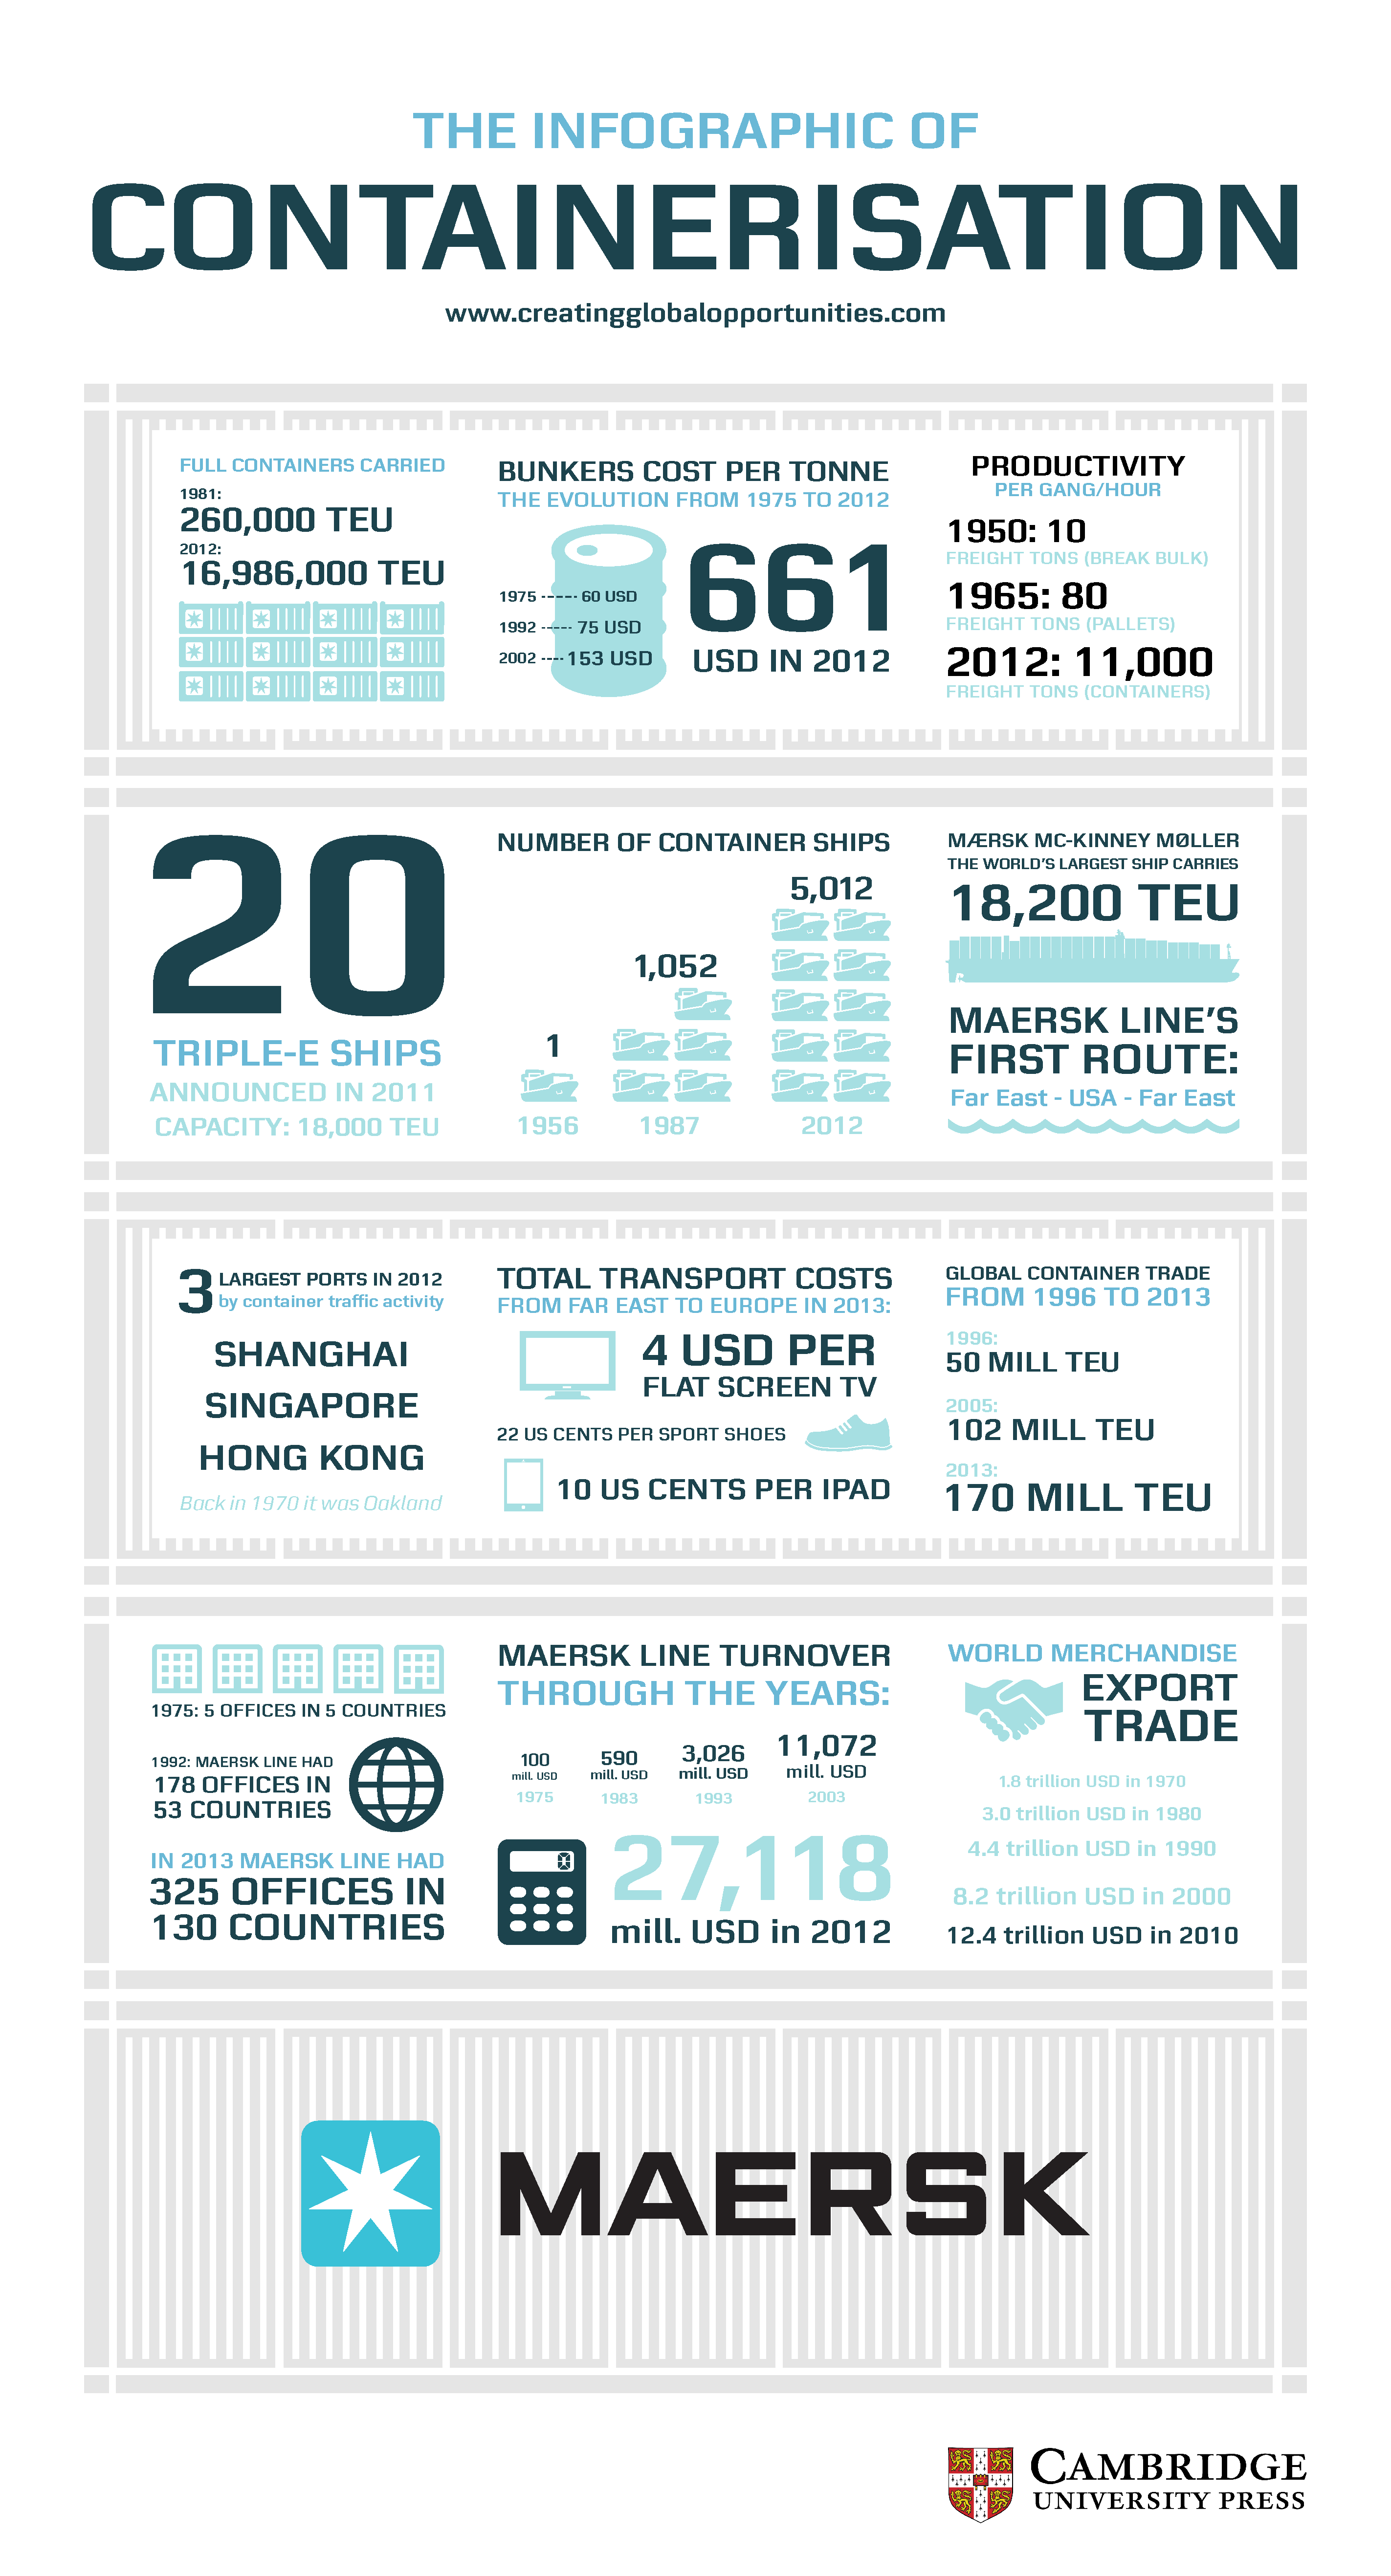 Maersk infographic- final version